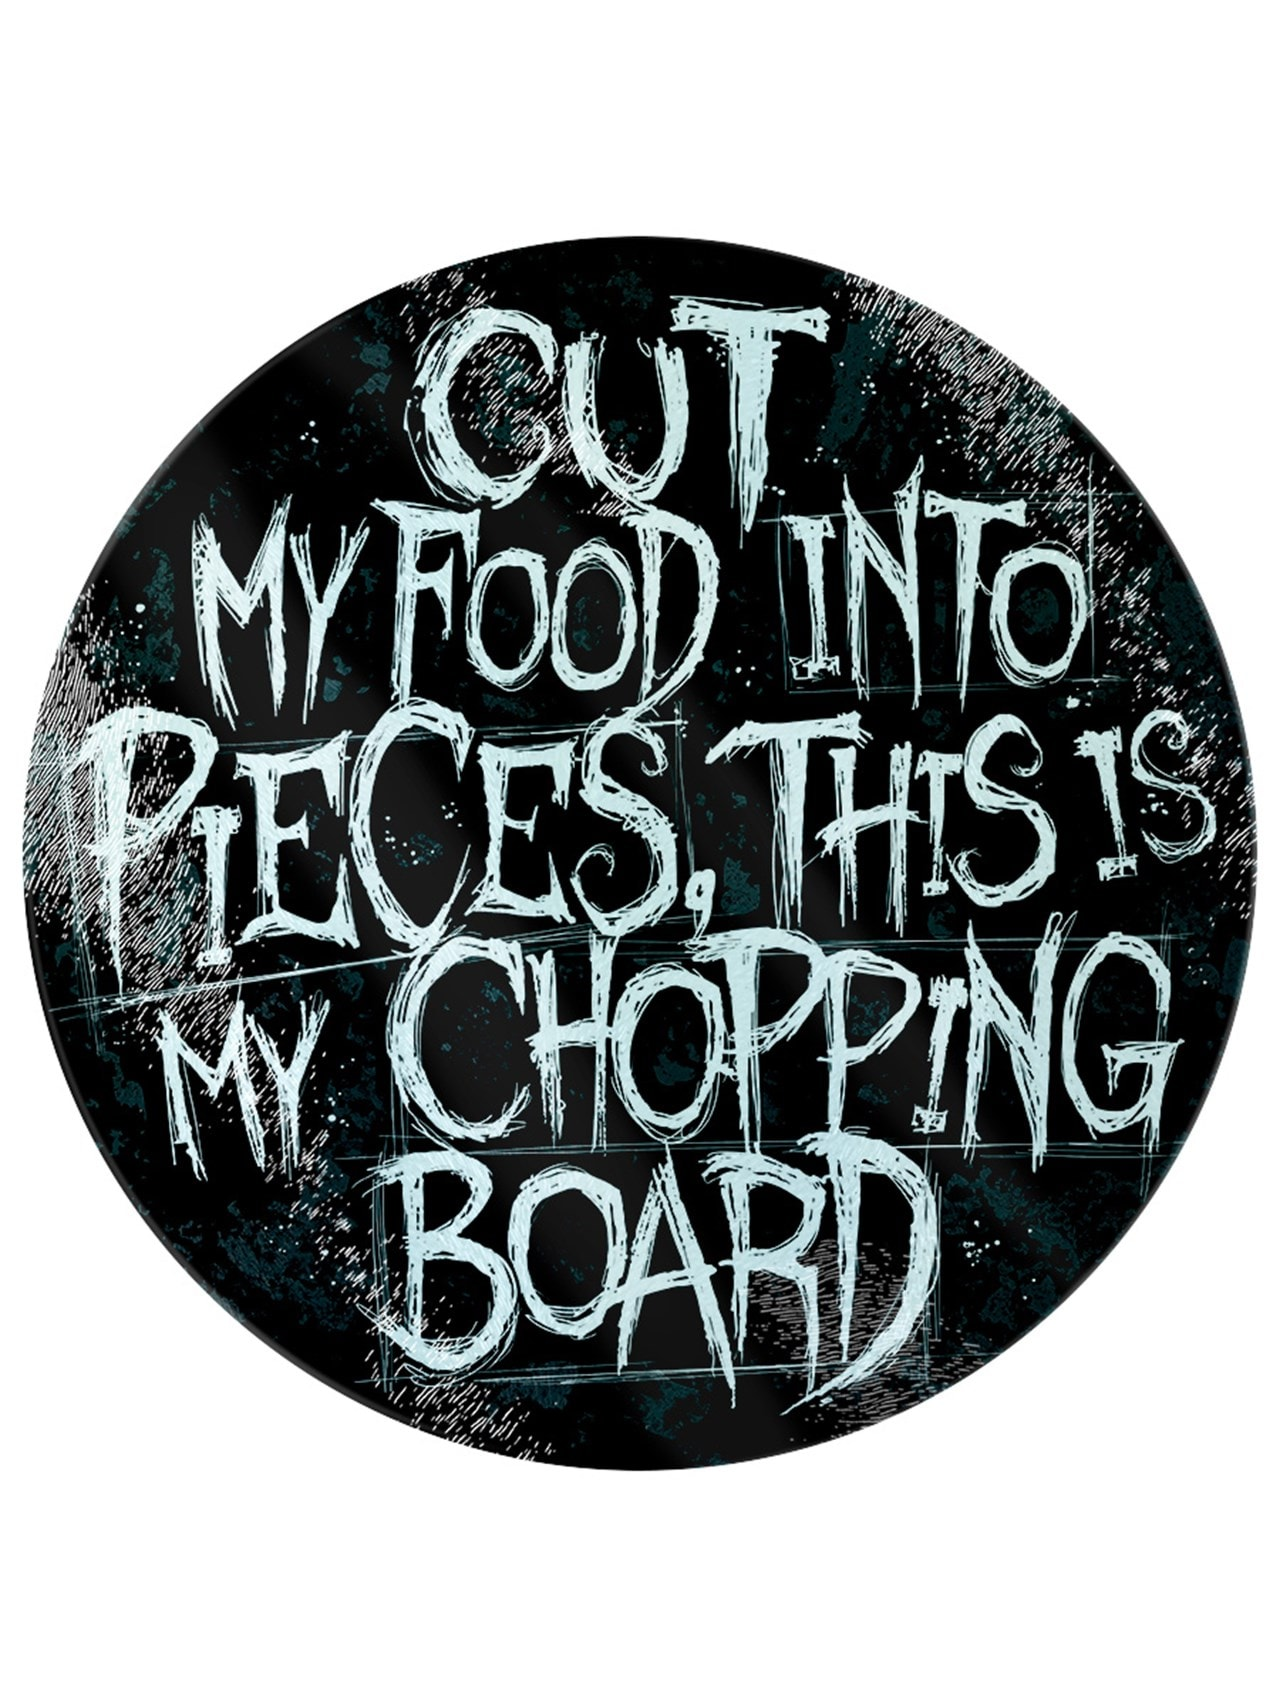 Cut My Food Into Pieces, This Is My Chopping Board: Glass Chopping Board - 2